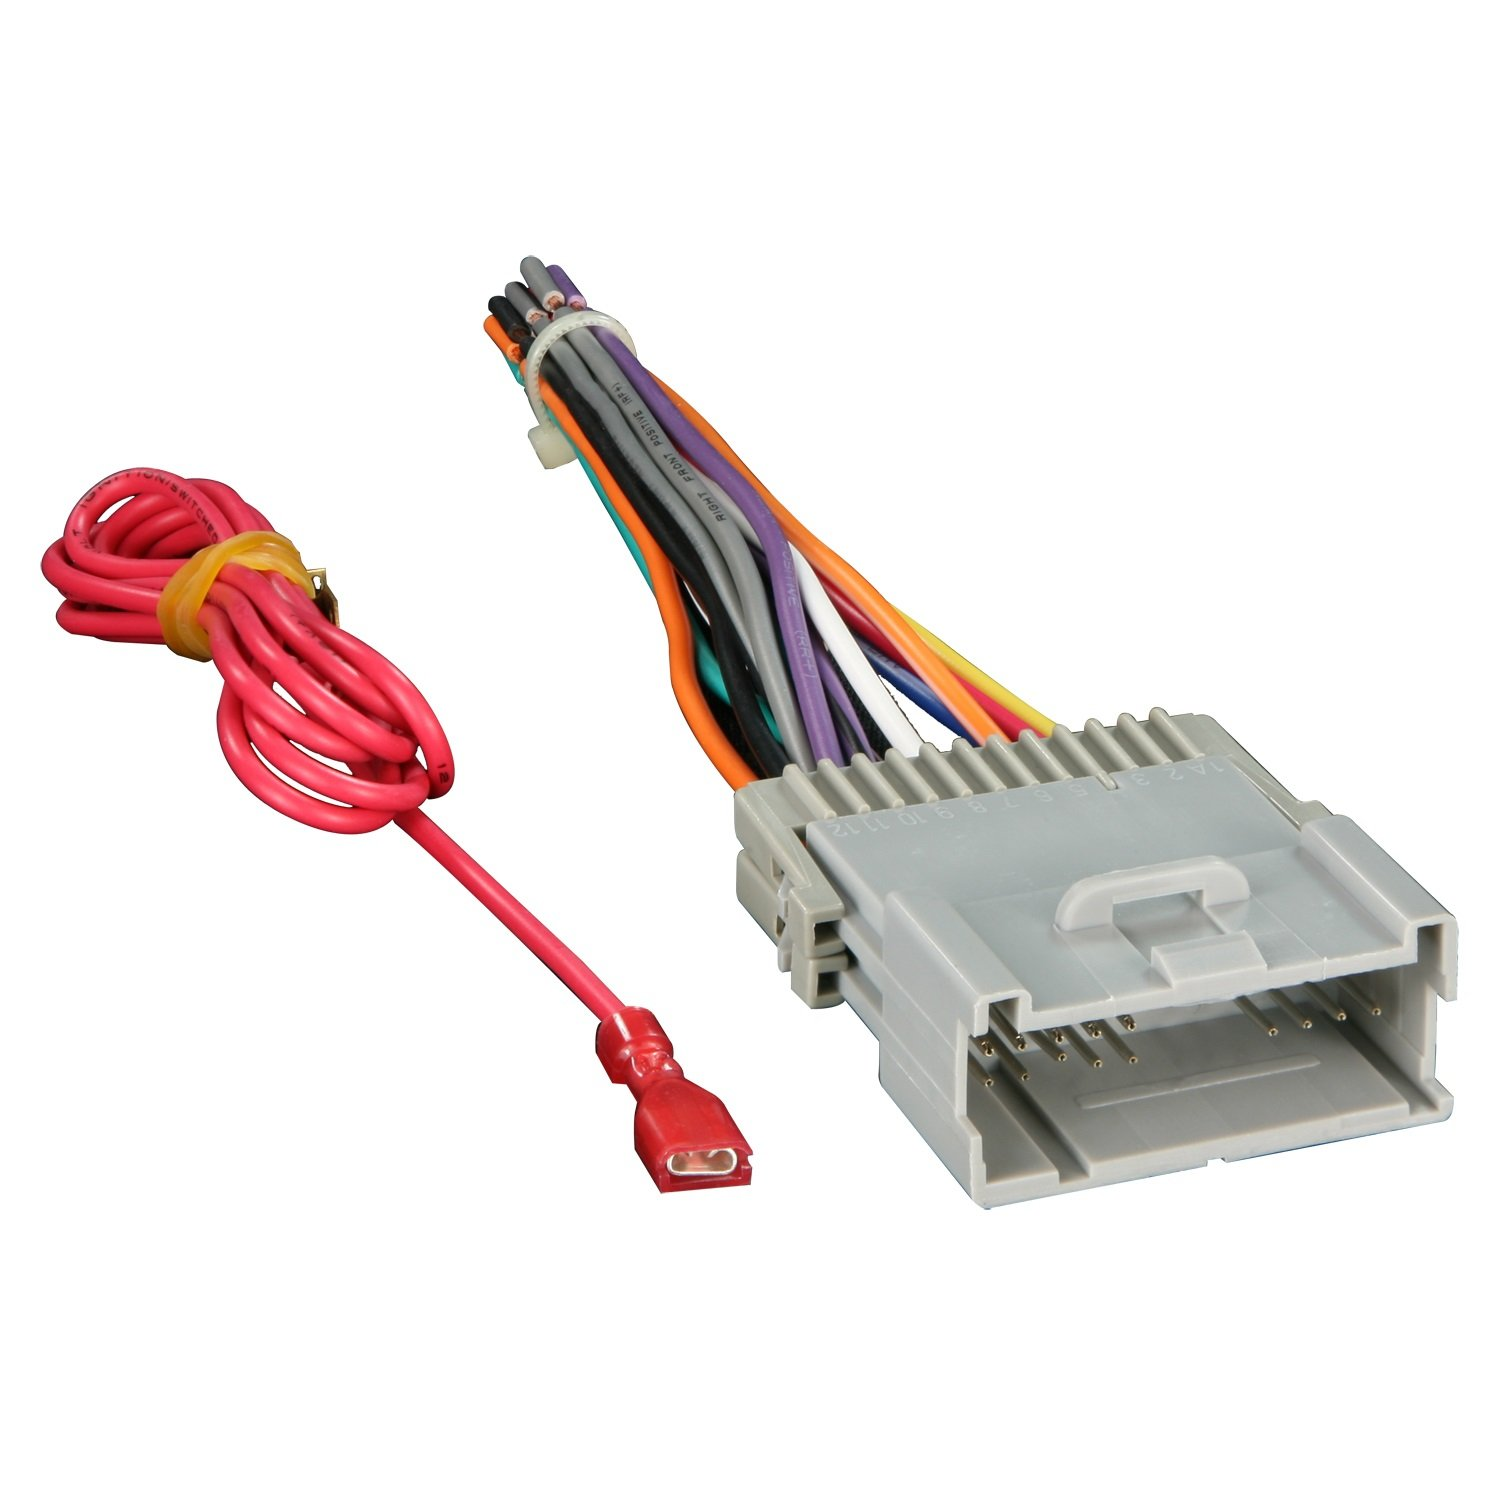 61eewxp9orL._SL1500_ amazon com metra 70 2003 radio wiring harness for gm 98 08  at crackthecode.co